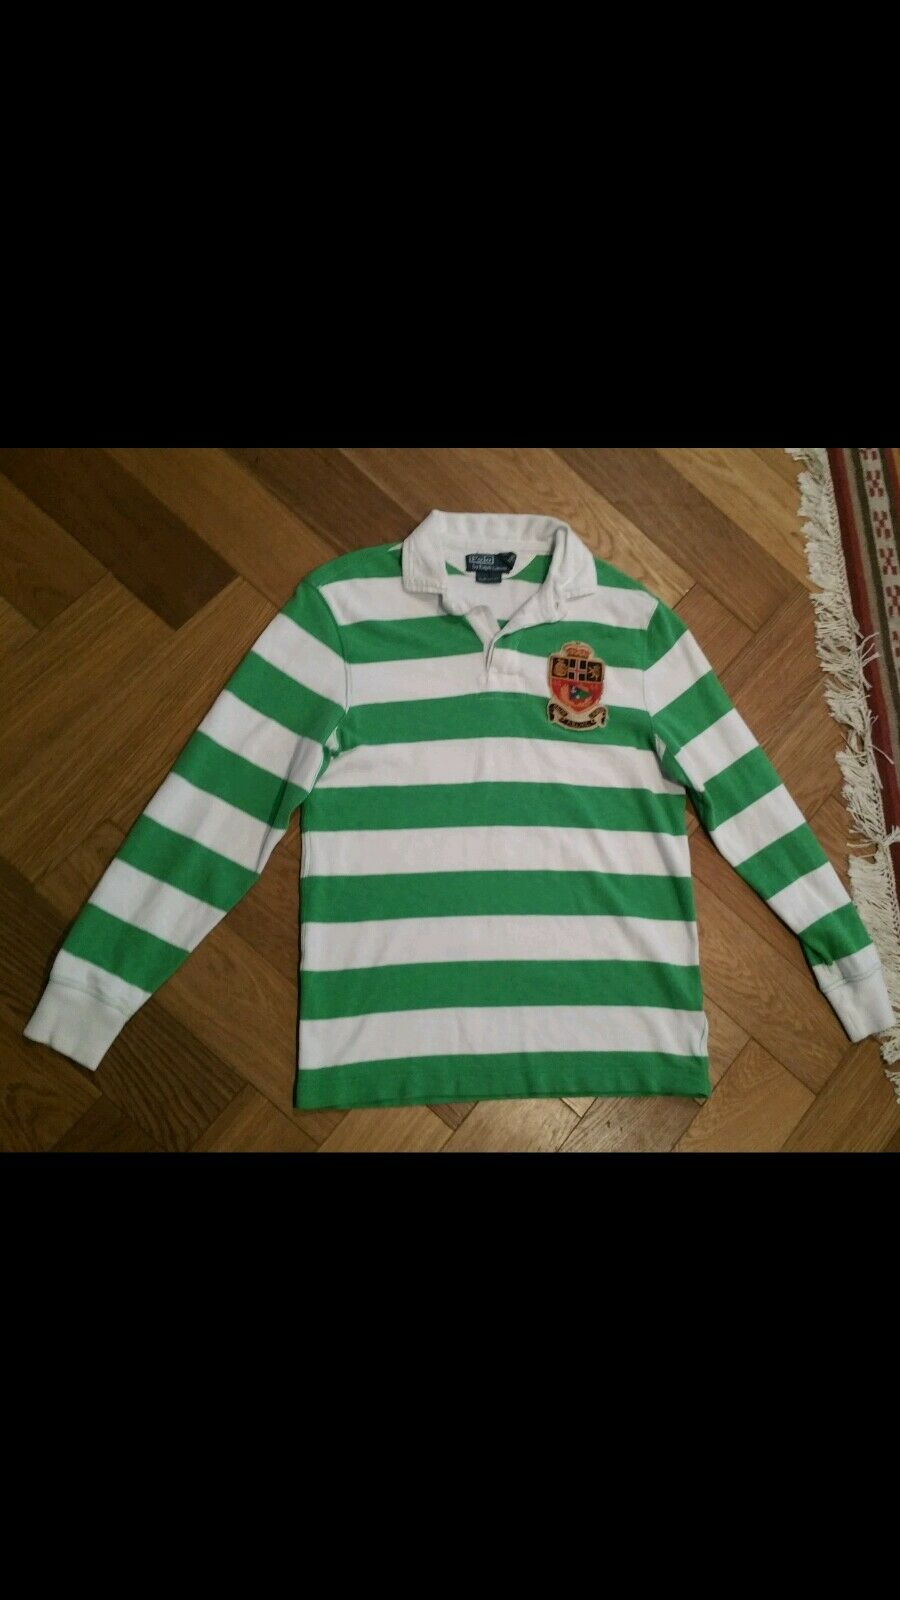 Polo Ralph Lauren PRLYC Polo size small rare rugby